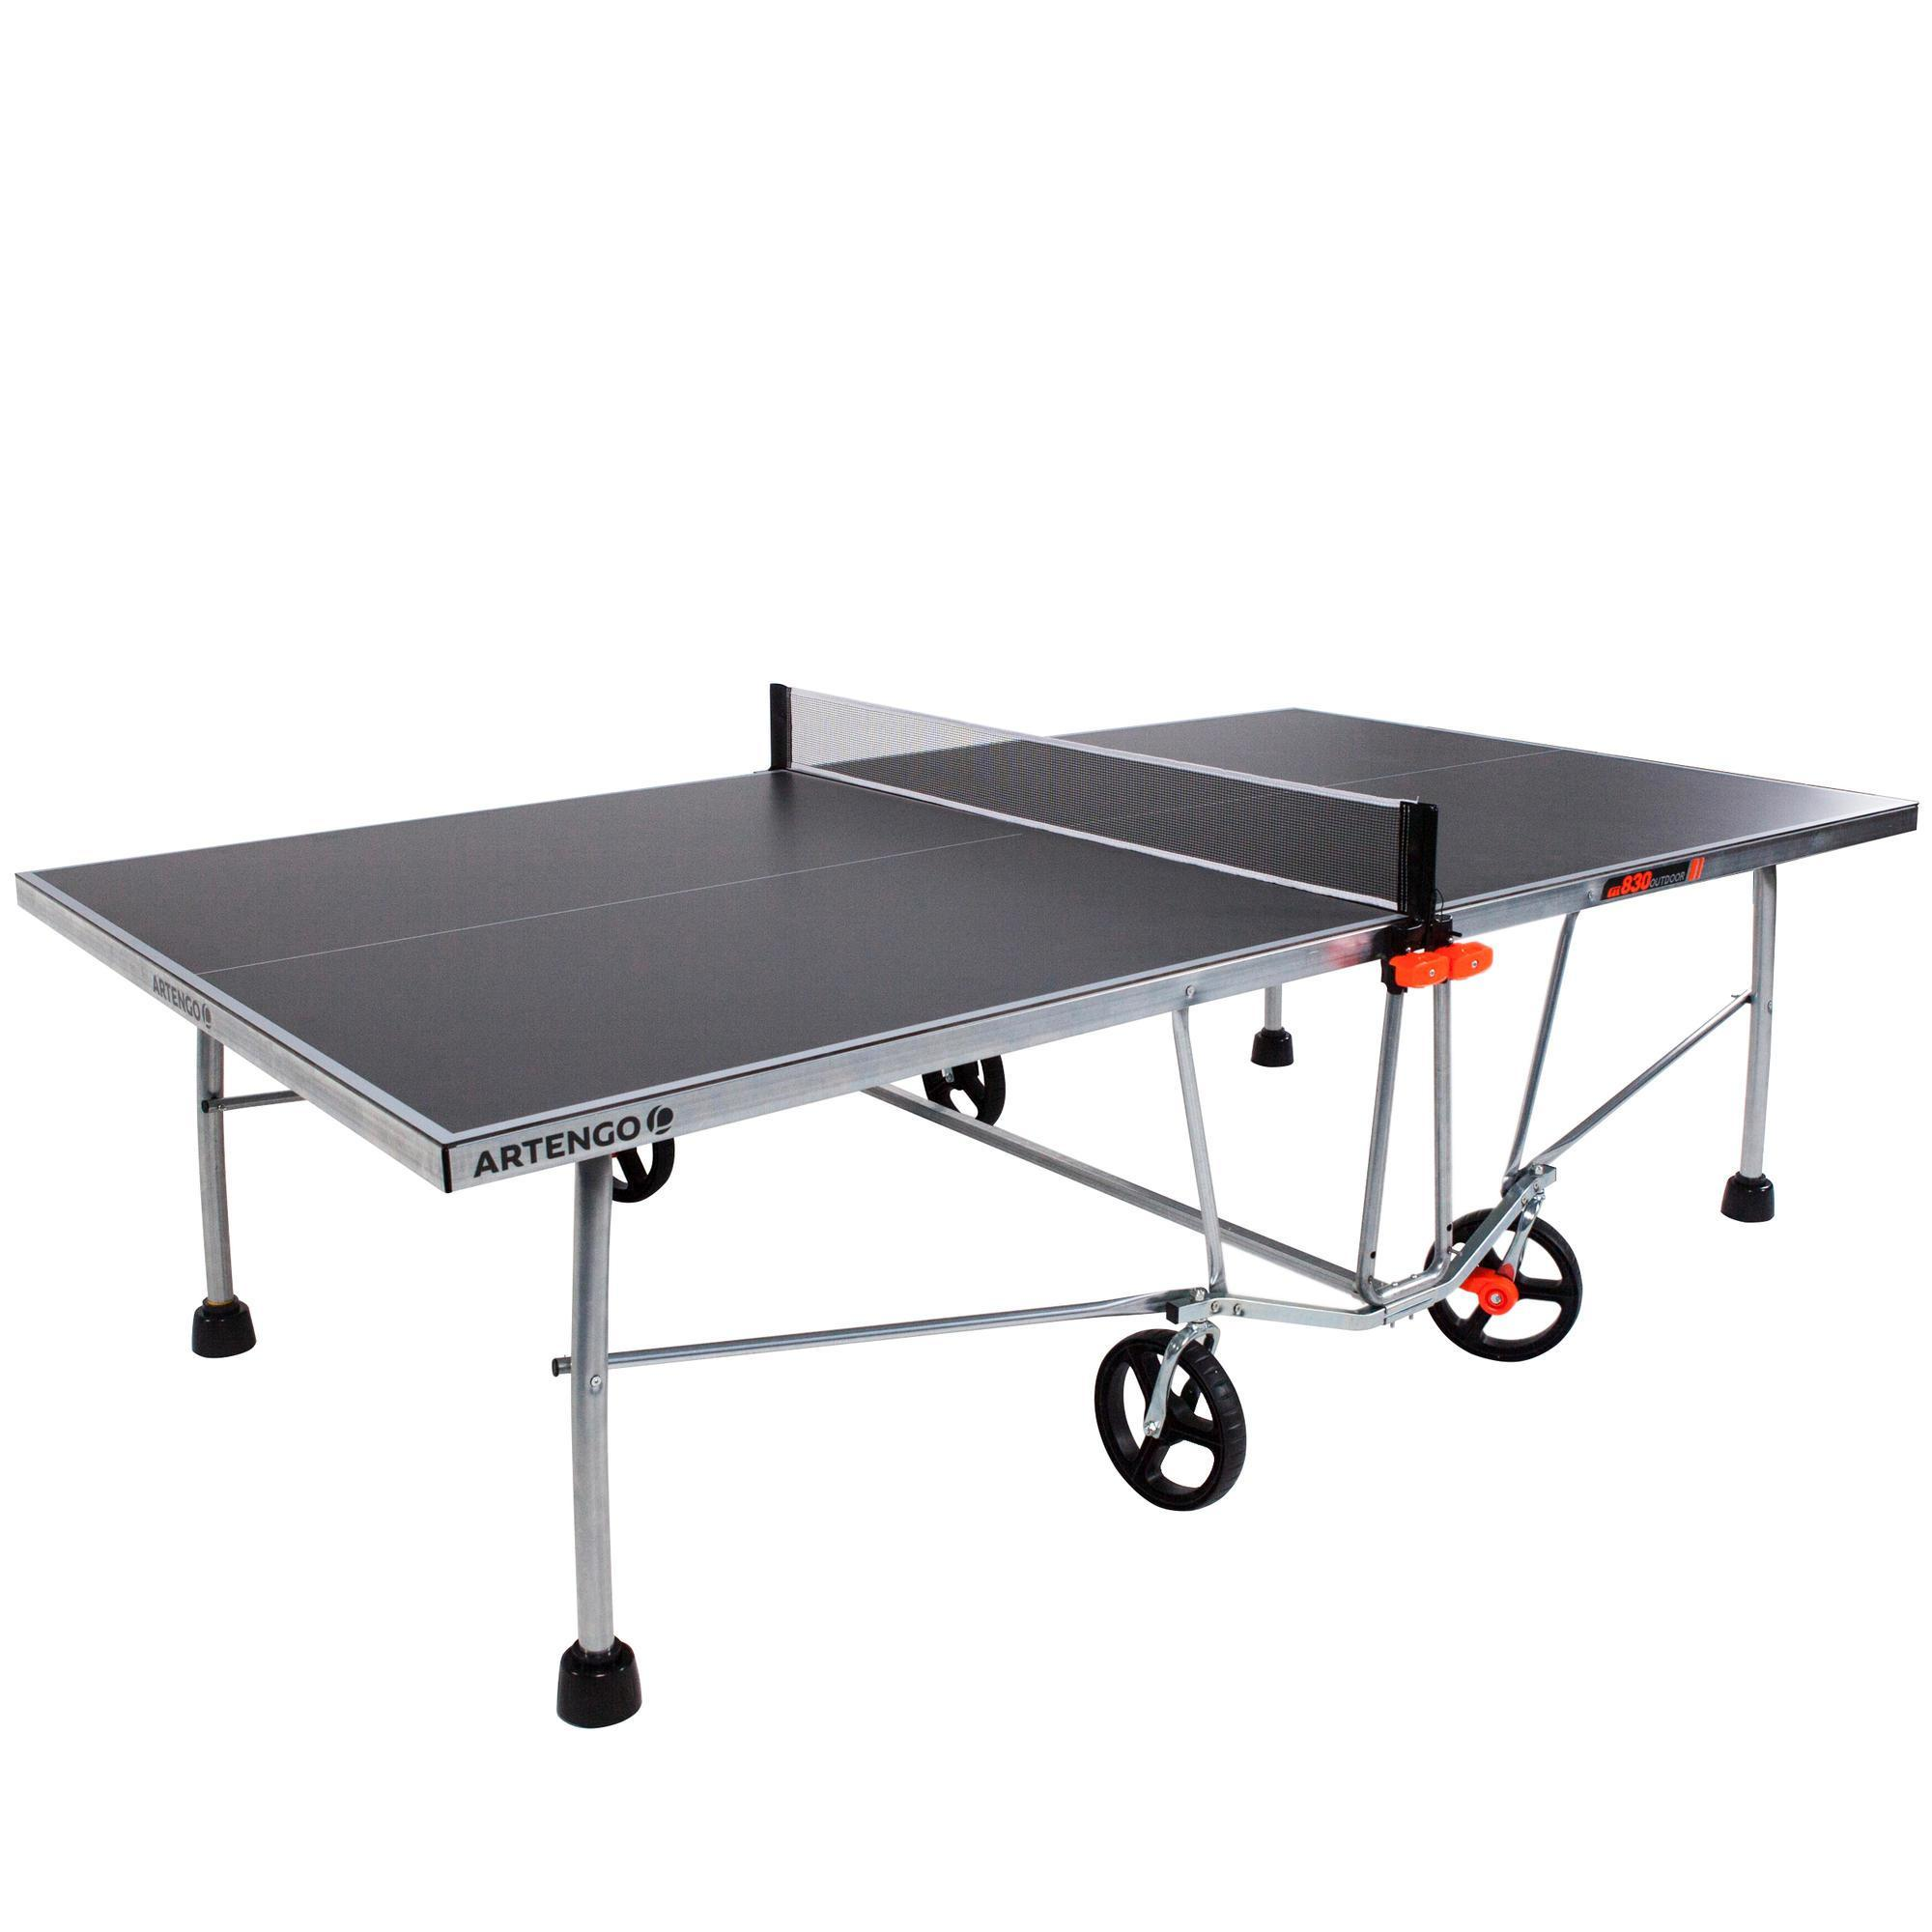 Table ping pong outdoor ft830 tennis de table artengo - Decathlon tavolo ping pong ...